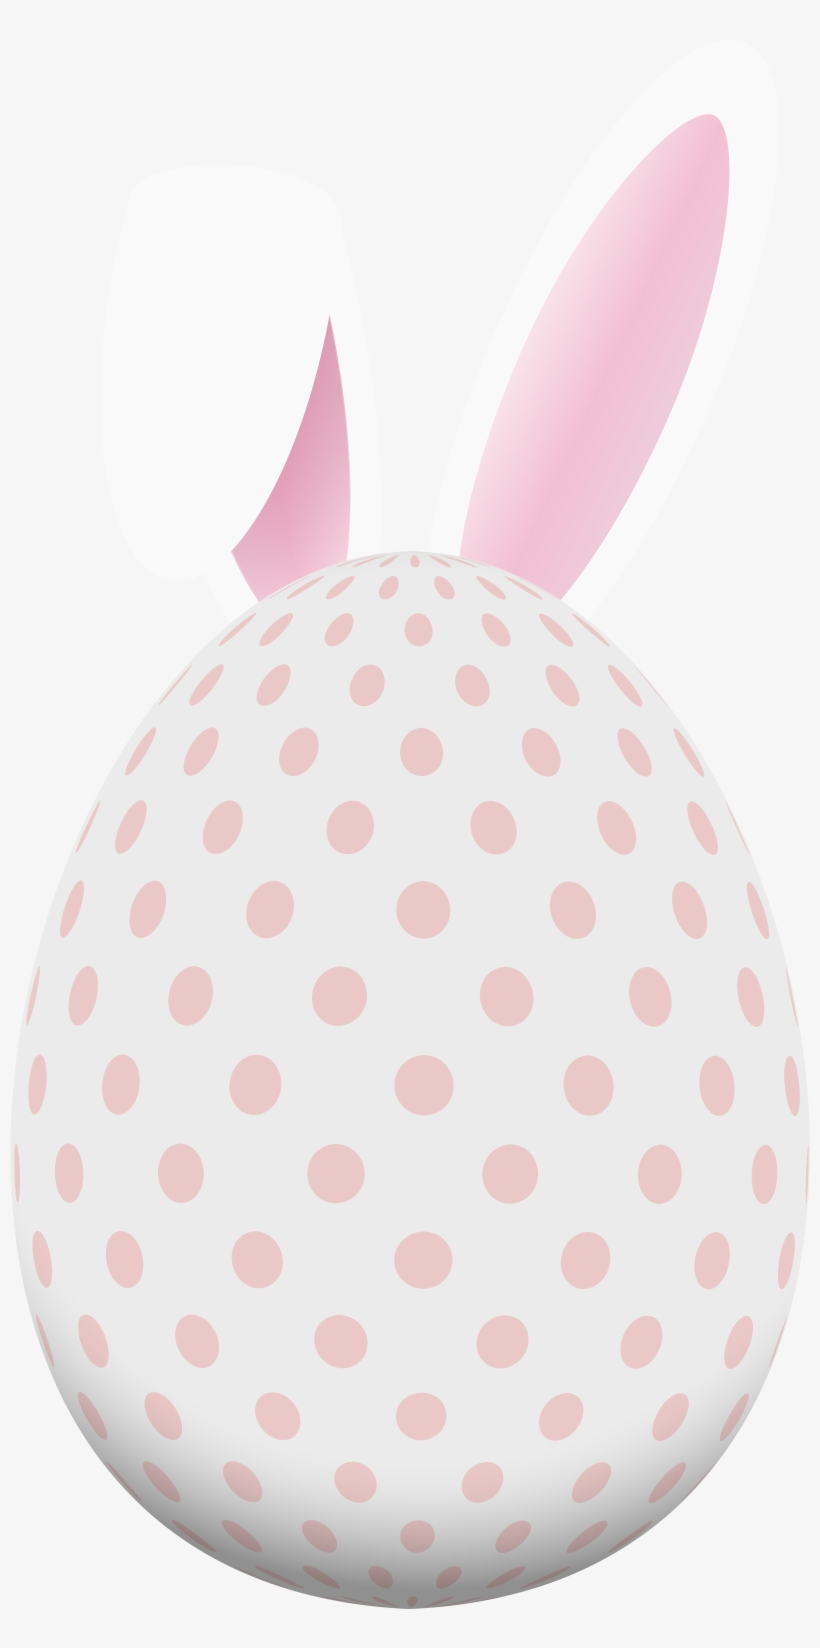 Bunny Png Egg With Clip Royalty Free - Easter Egg With Bunny Ears Clipart, transparent png #167543